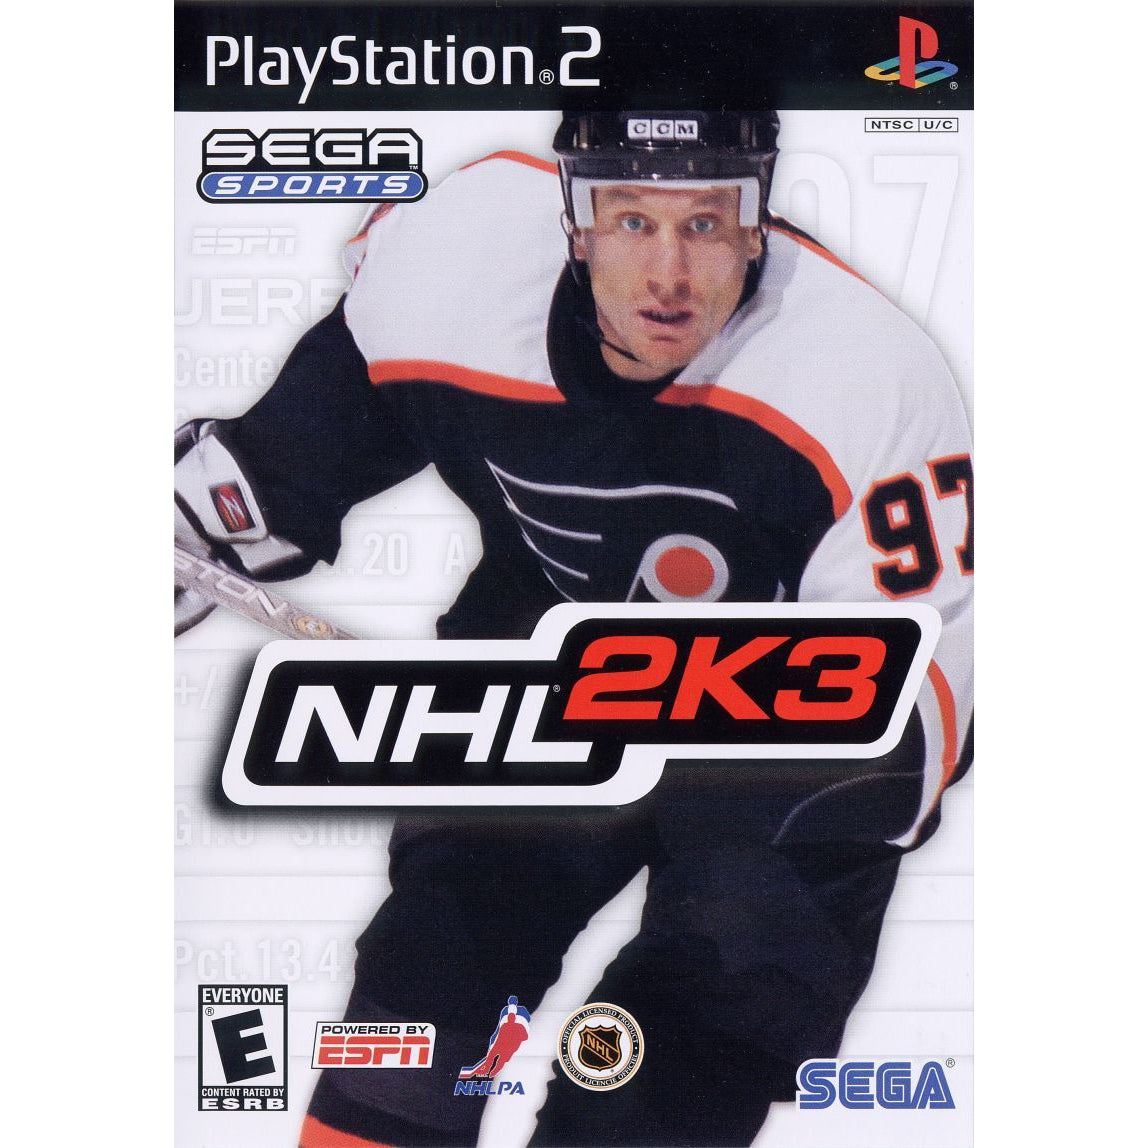 NHL 2K3 - PlayStation 2 (PS2) Game Complete - YourGamingShop.com - Buy, Sell, Trade Video Games Online. 120 Day Warranty. Satisfaction Guaranteed.